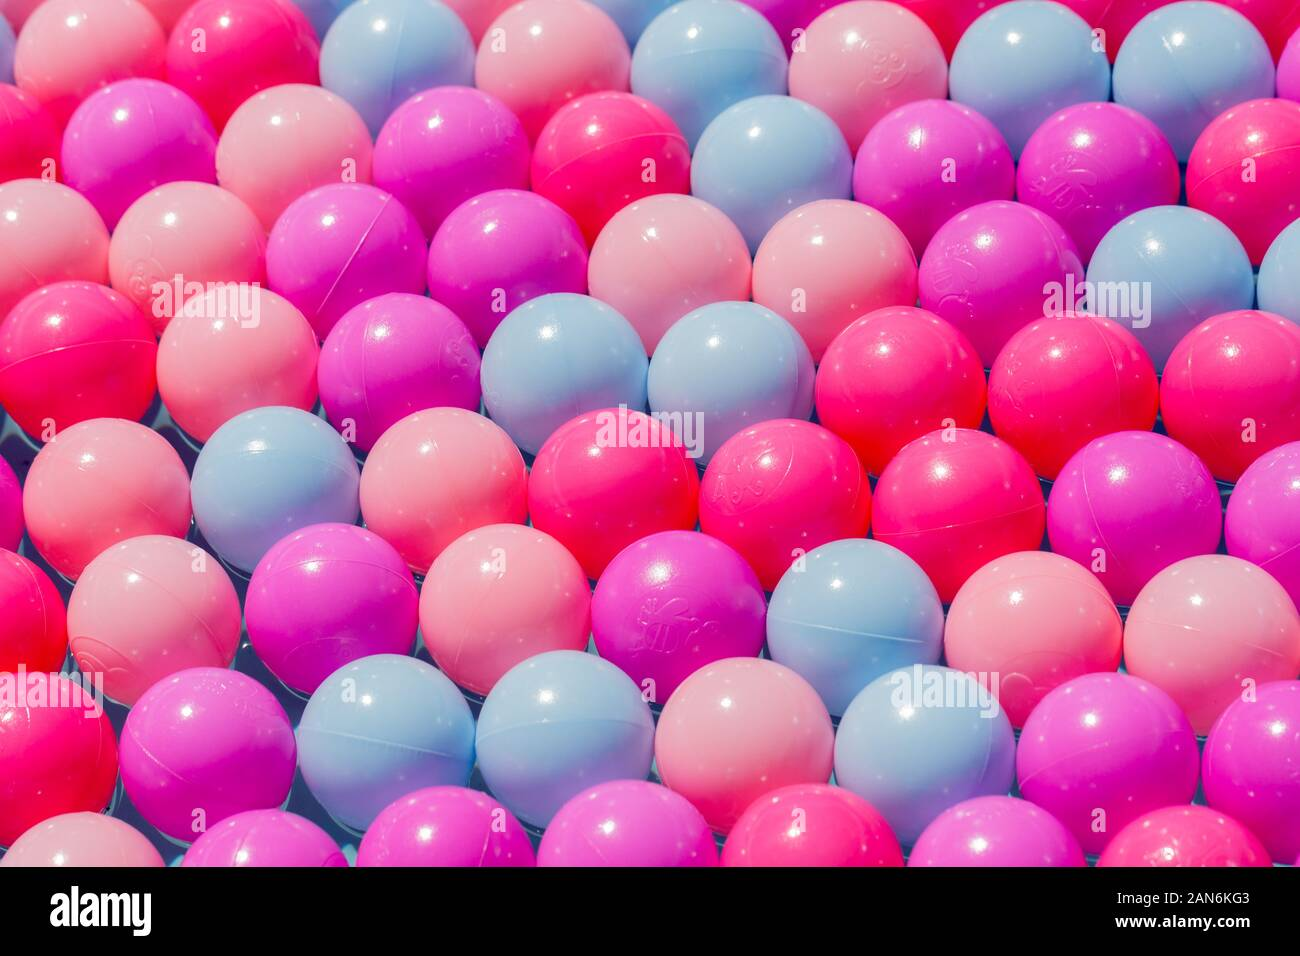 Plastic balls of various colors perfectly line up in several rows. Concept. Symbol for unity, perfection, diversity, alginment, being different. Stock Photo